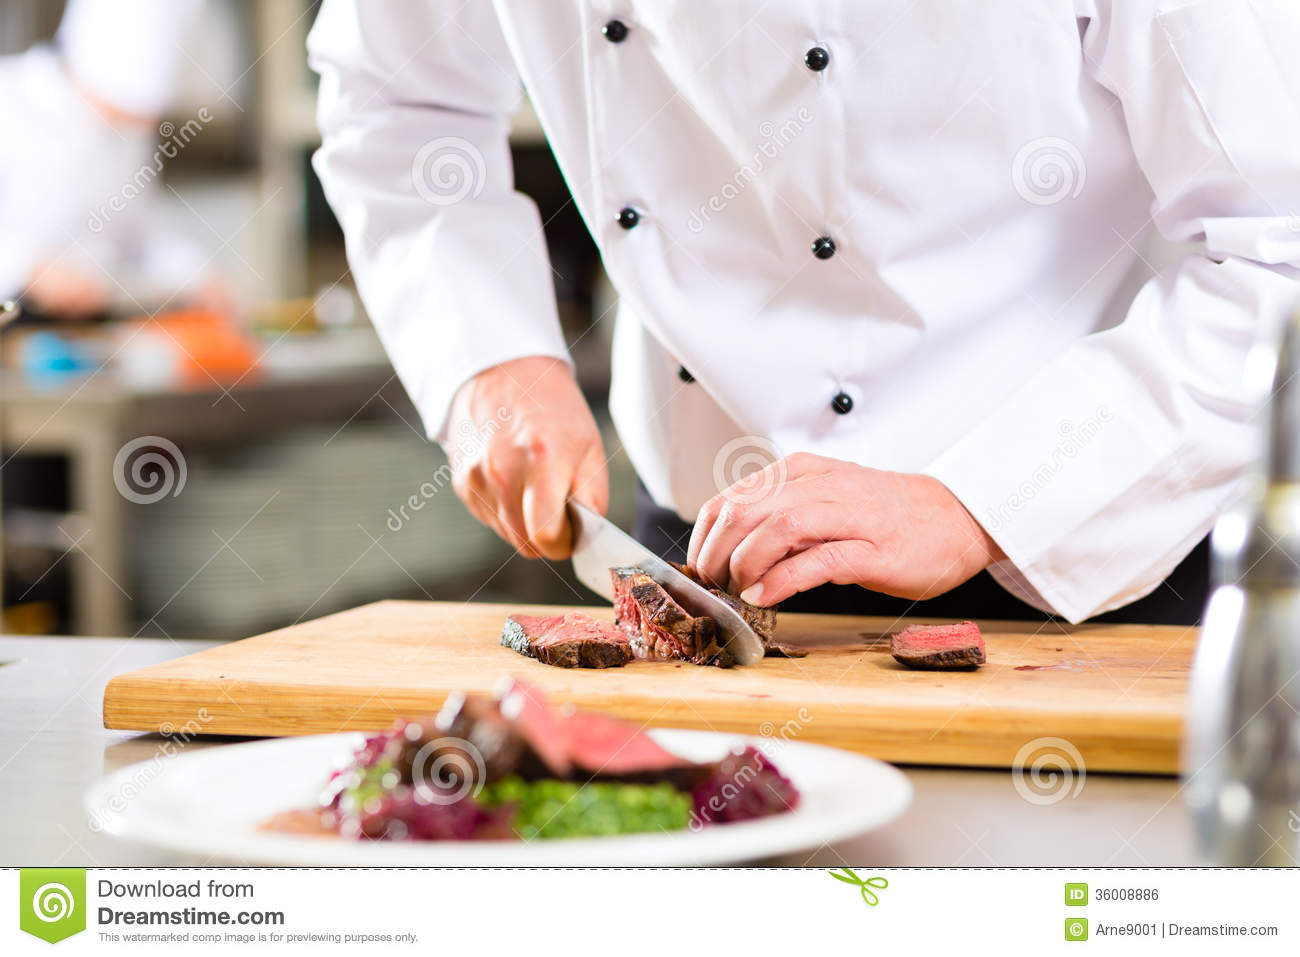 Restaurant Kitchen Hand chef in restaurant kitchen preparing food royalty free stock image